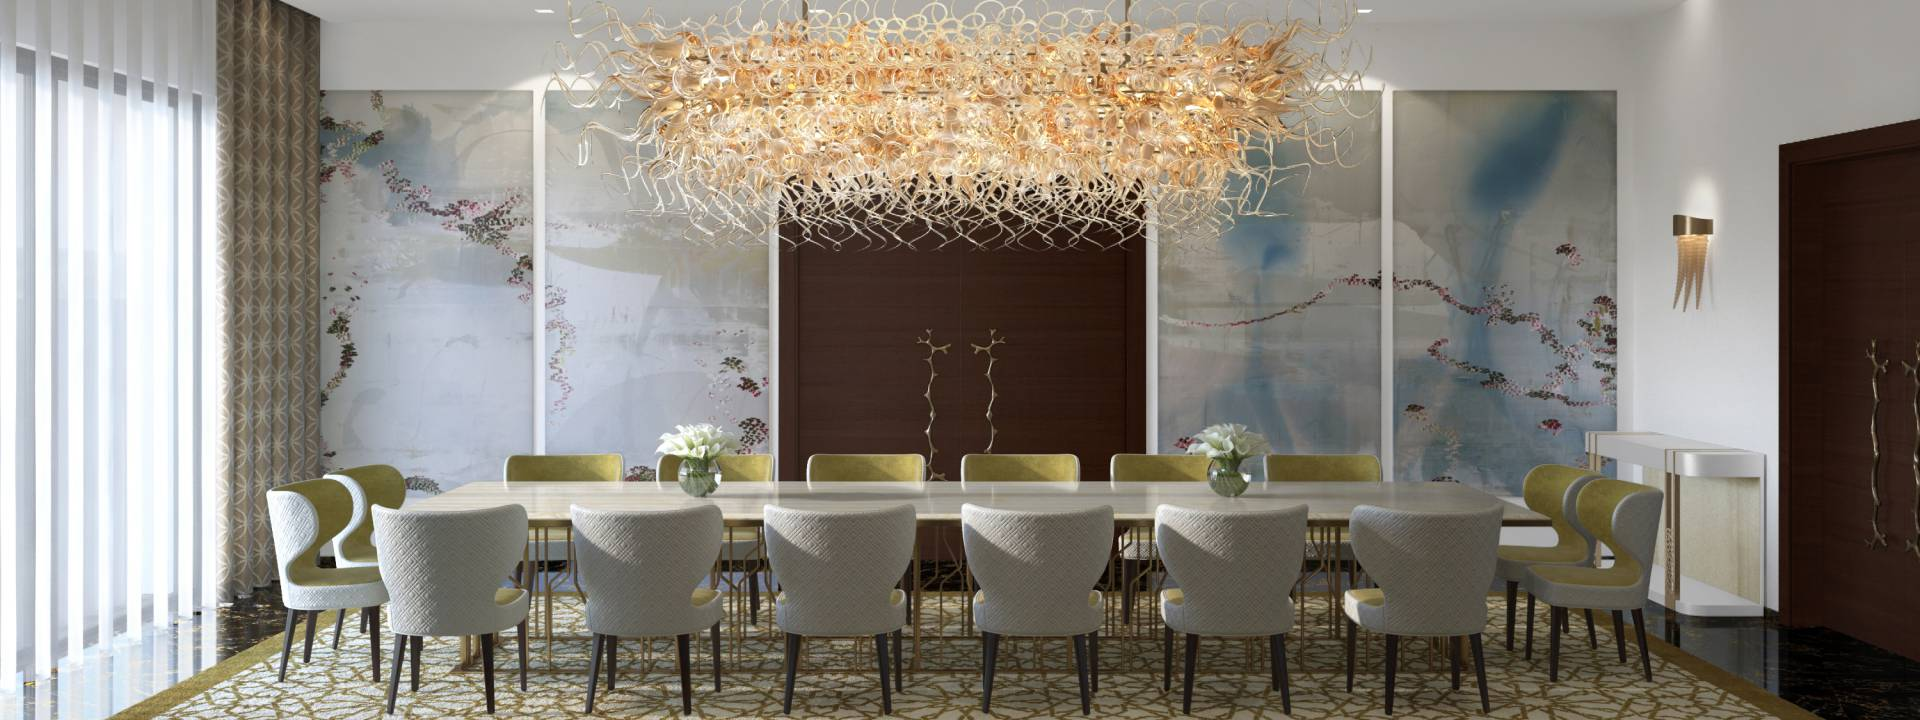 Luxury Dining room deigned by Yvette Taylor London